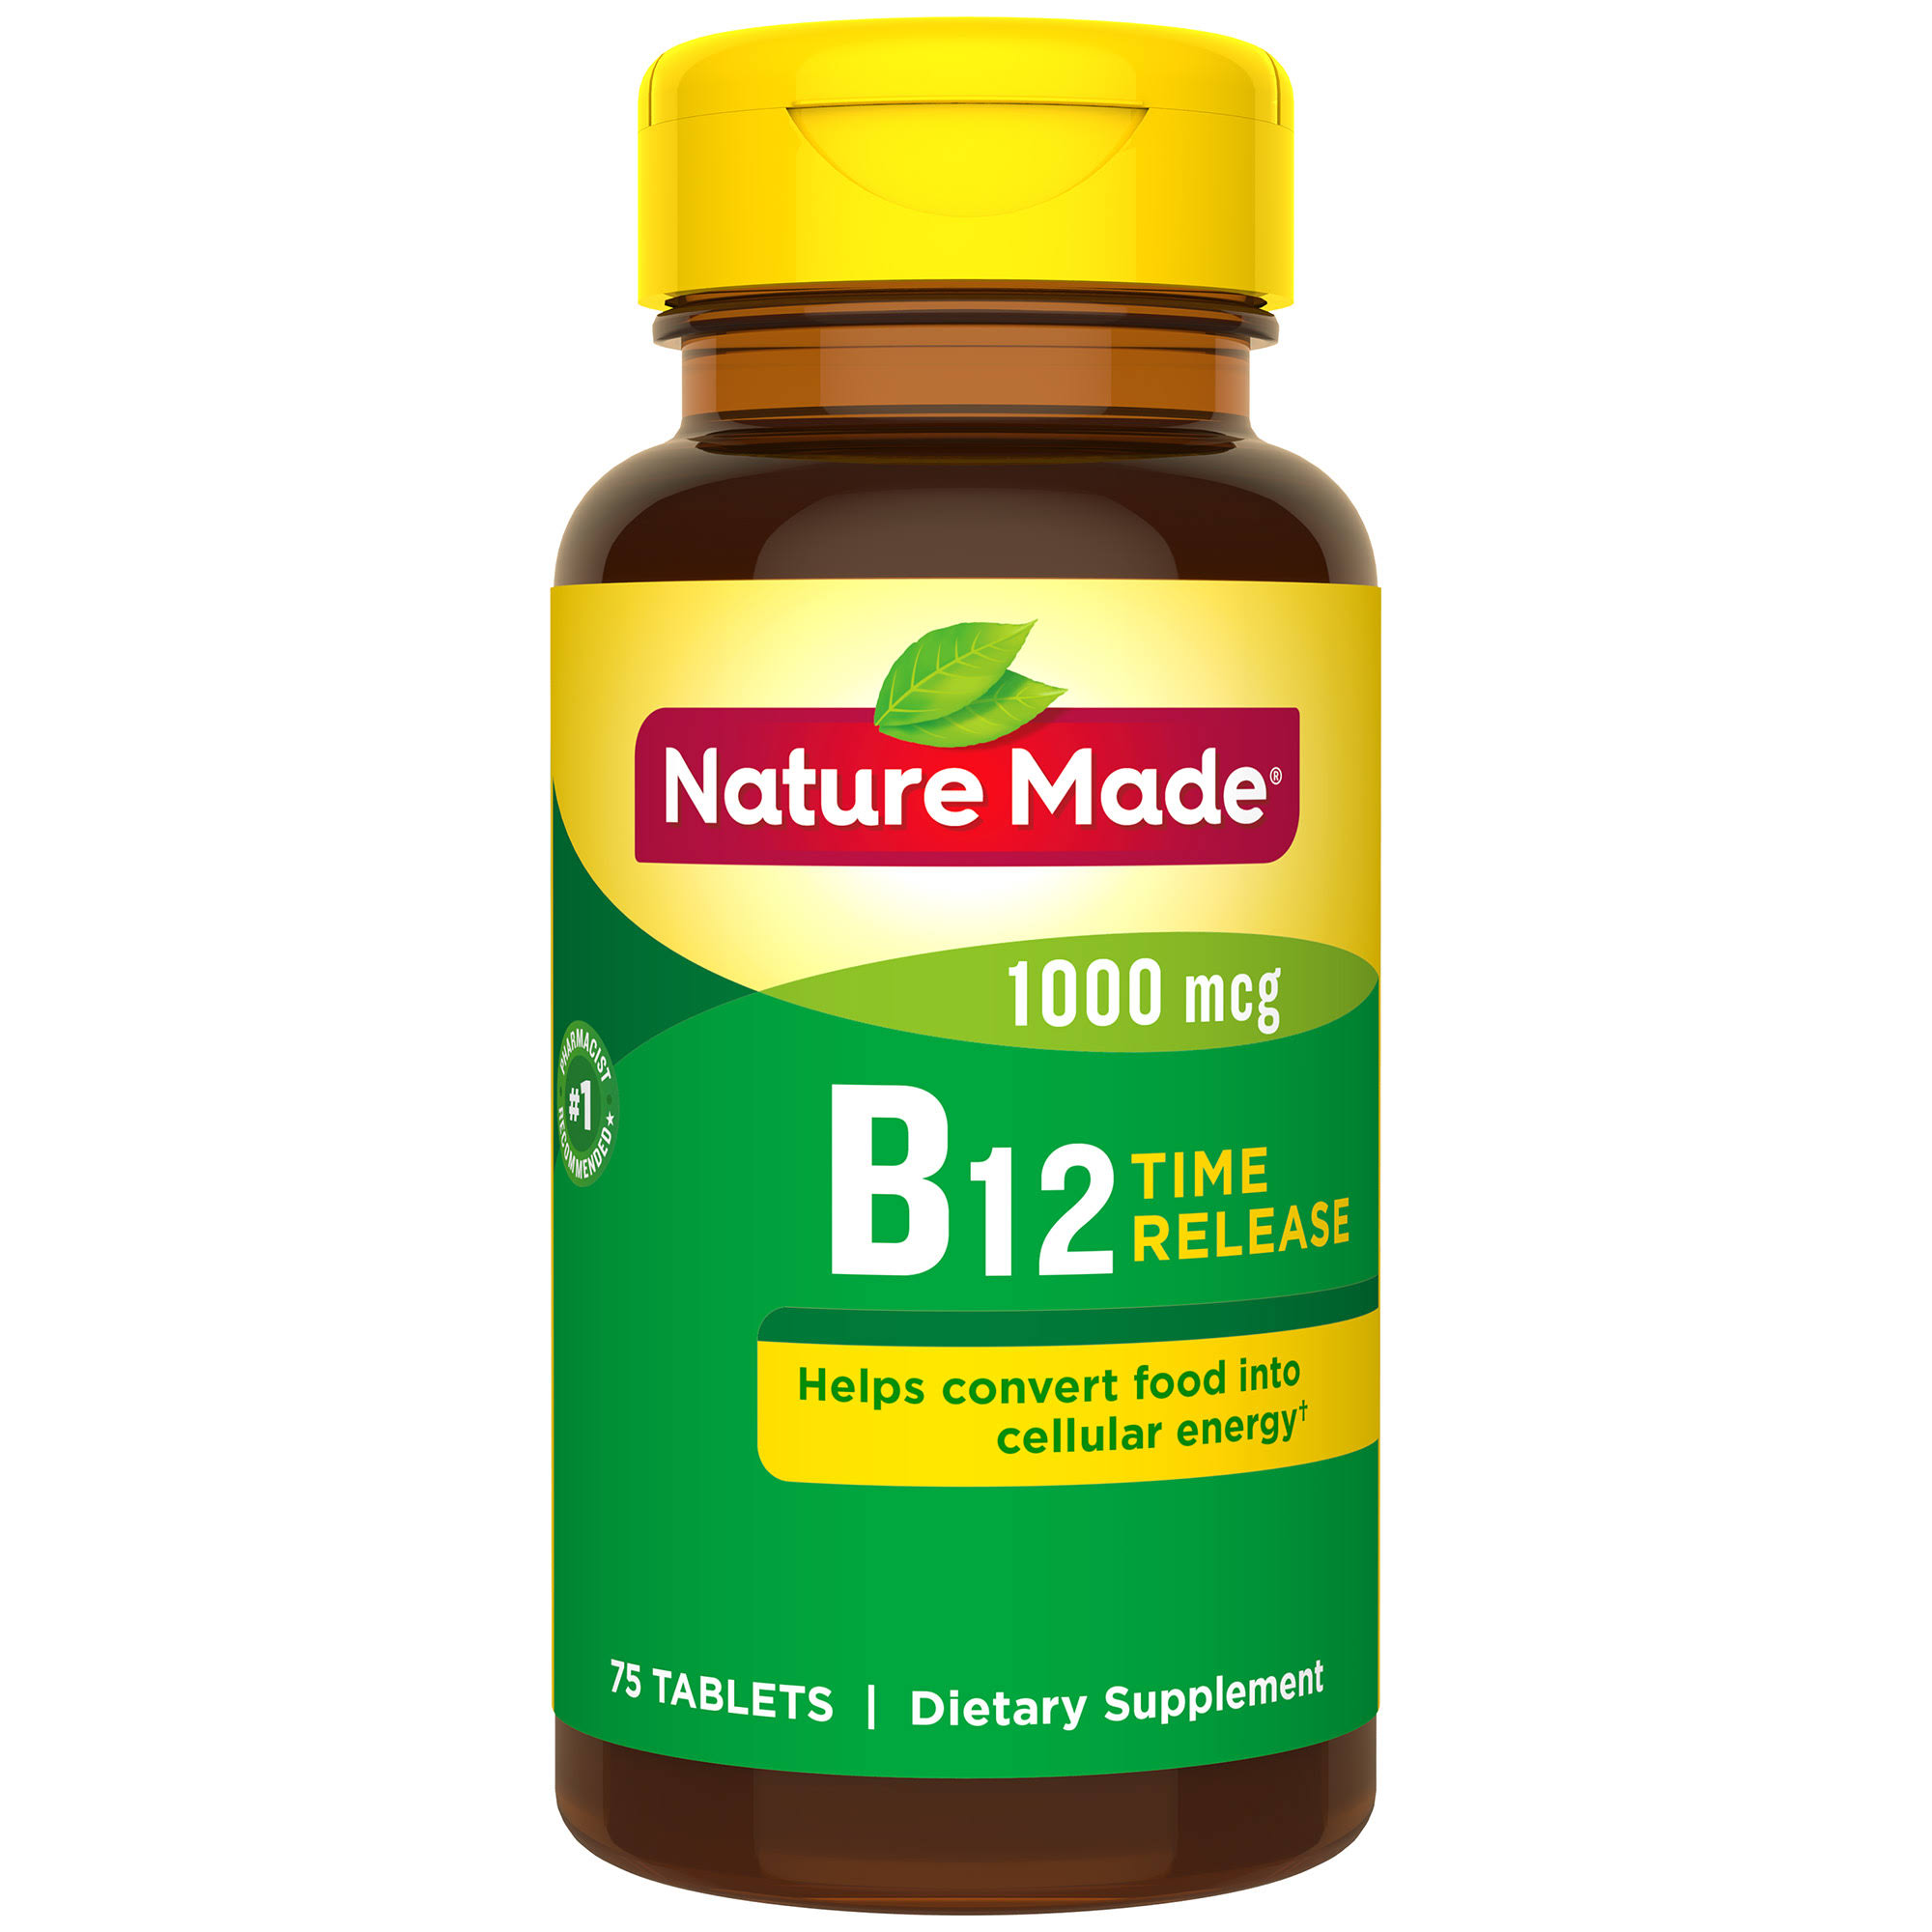 Nature Made Vitamin B12 1000 mcg Tablets - 75 Pack